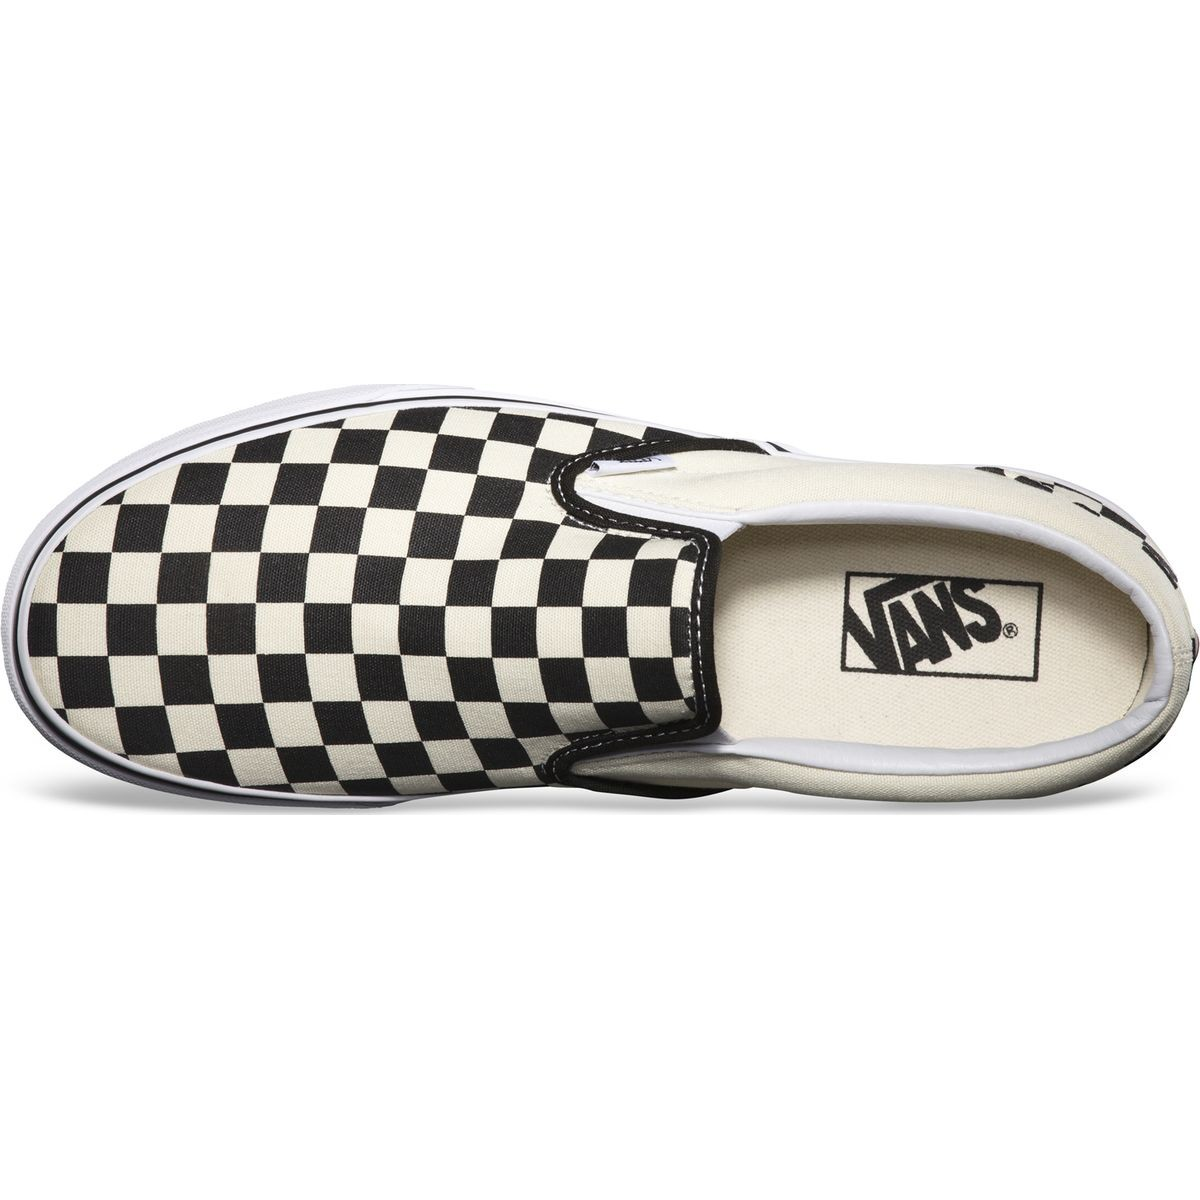 a6d2eaf244c41b Vans Classic Slip-On Checkerboard Youth Shoes - Black White - 5.0